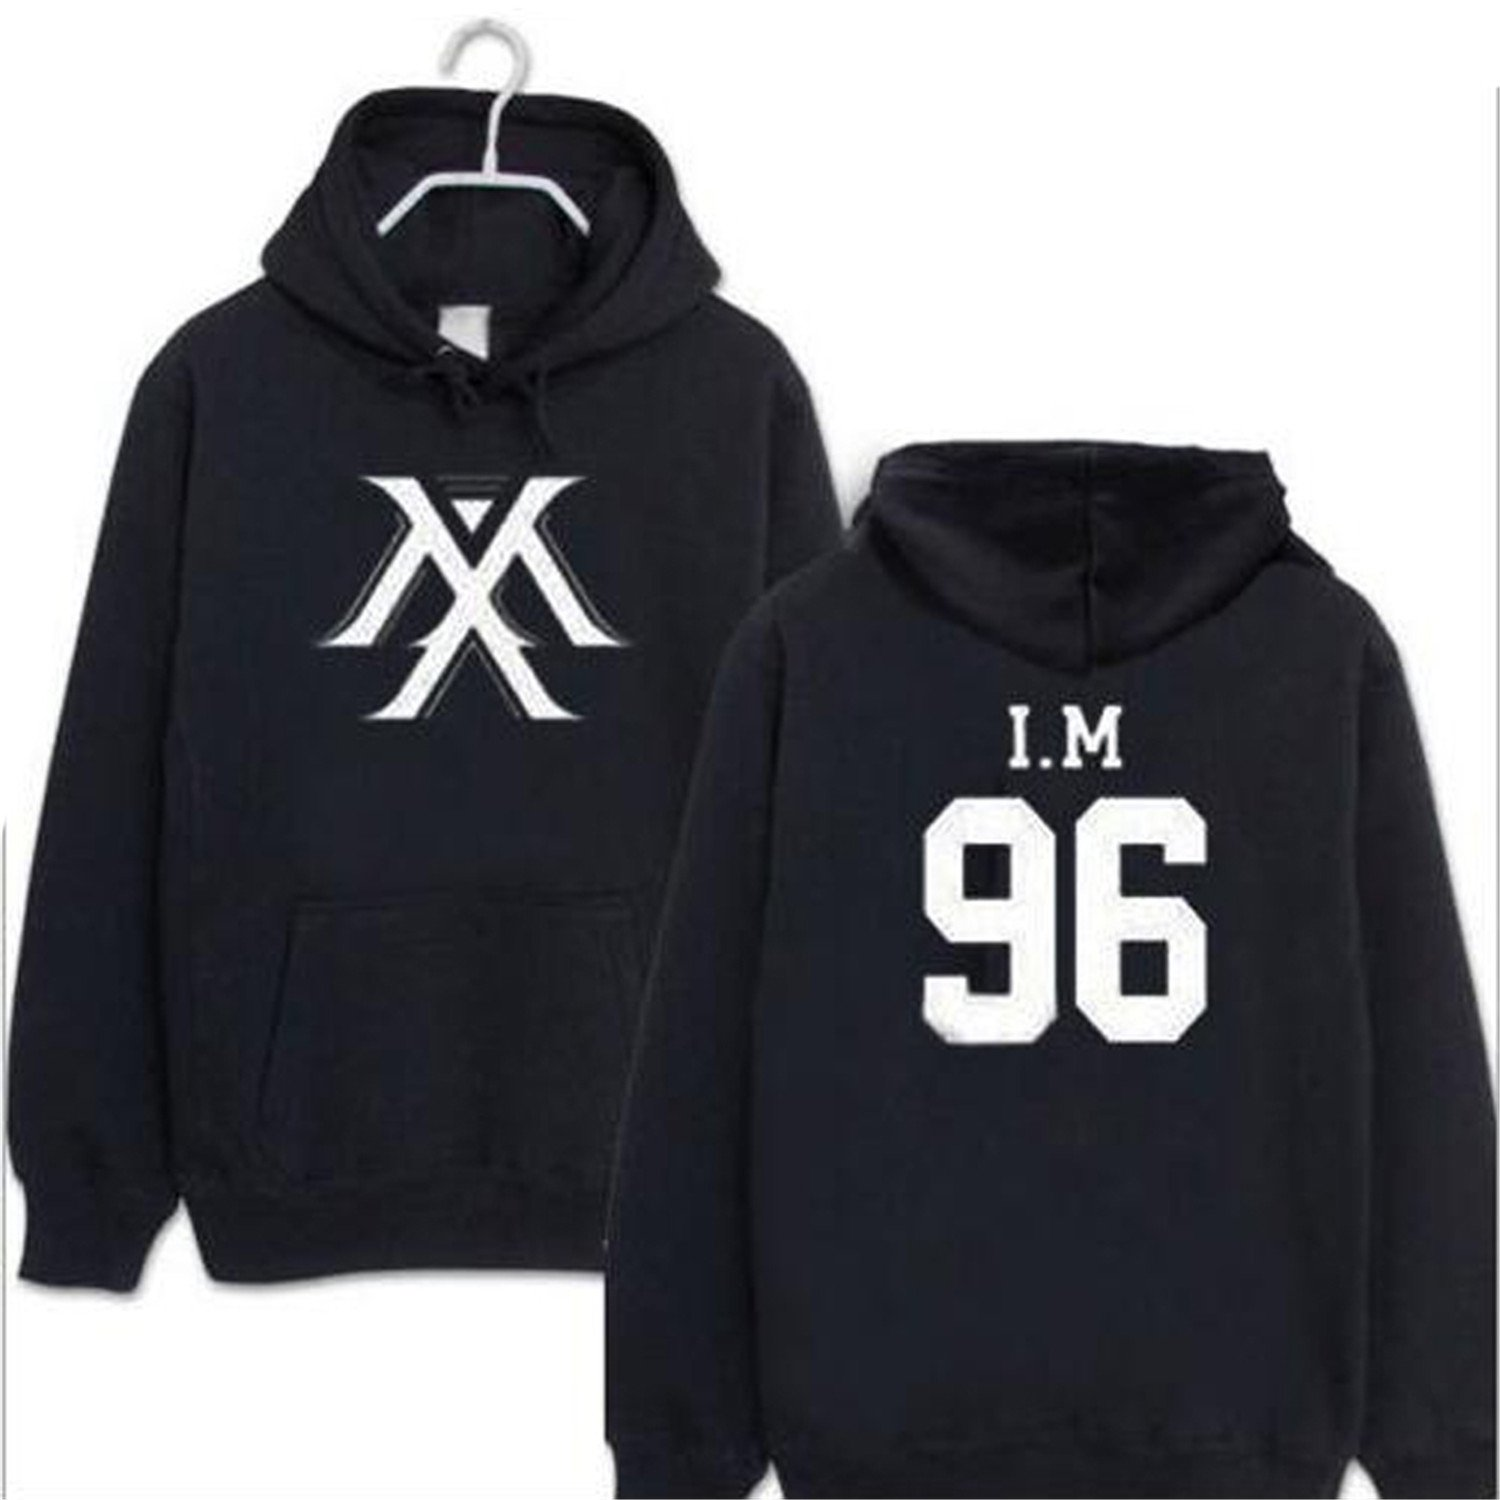 Renee Ander Simple I.M JOOHEON MINHYUK SHOWNU YOOKIHYUN Harajuku Sweatshirt Hoodie Fleeces Coat Long Sleeve Hoody at Amazon Womens Clothing store: